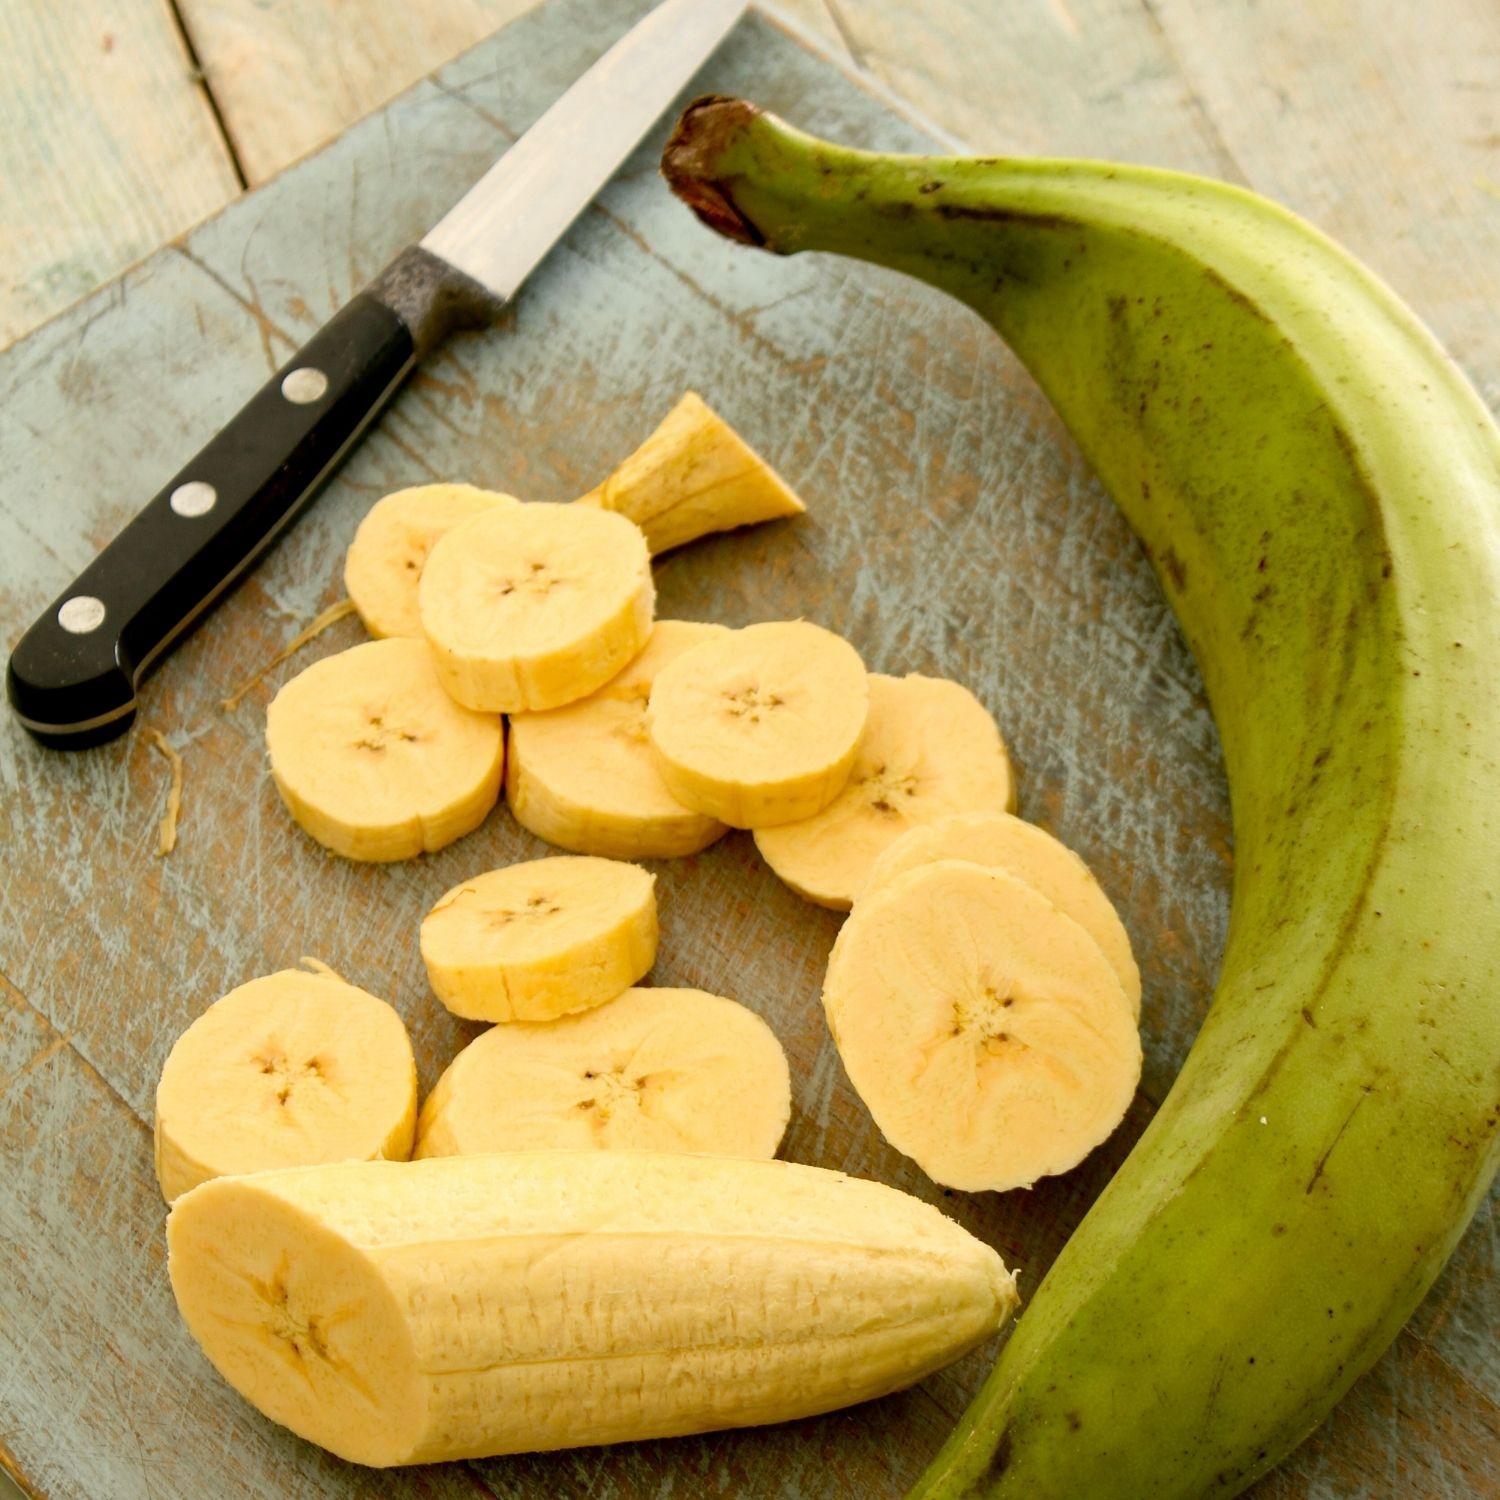 how to peel and cook plantains - Green plantain on a cutting board with plantain slices and a knife